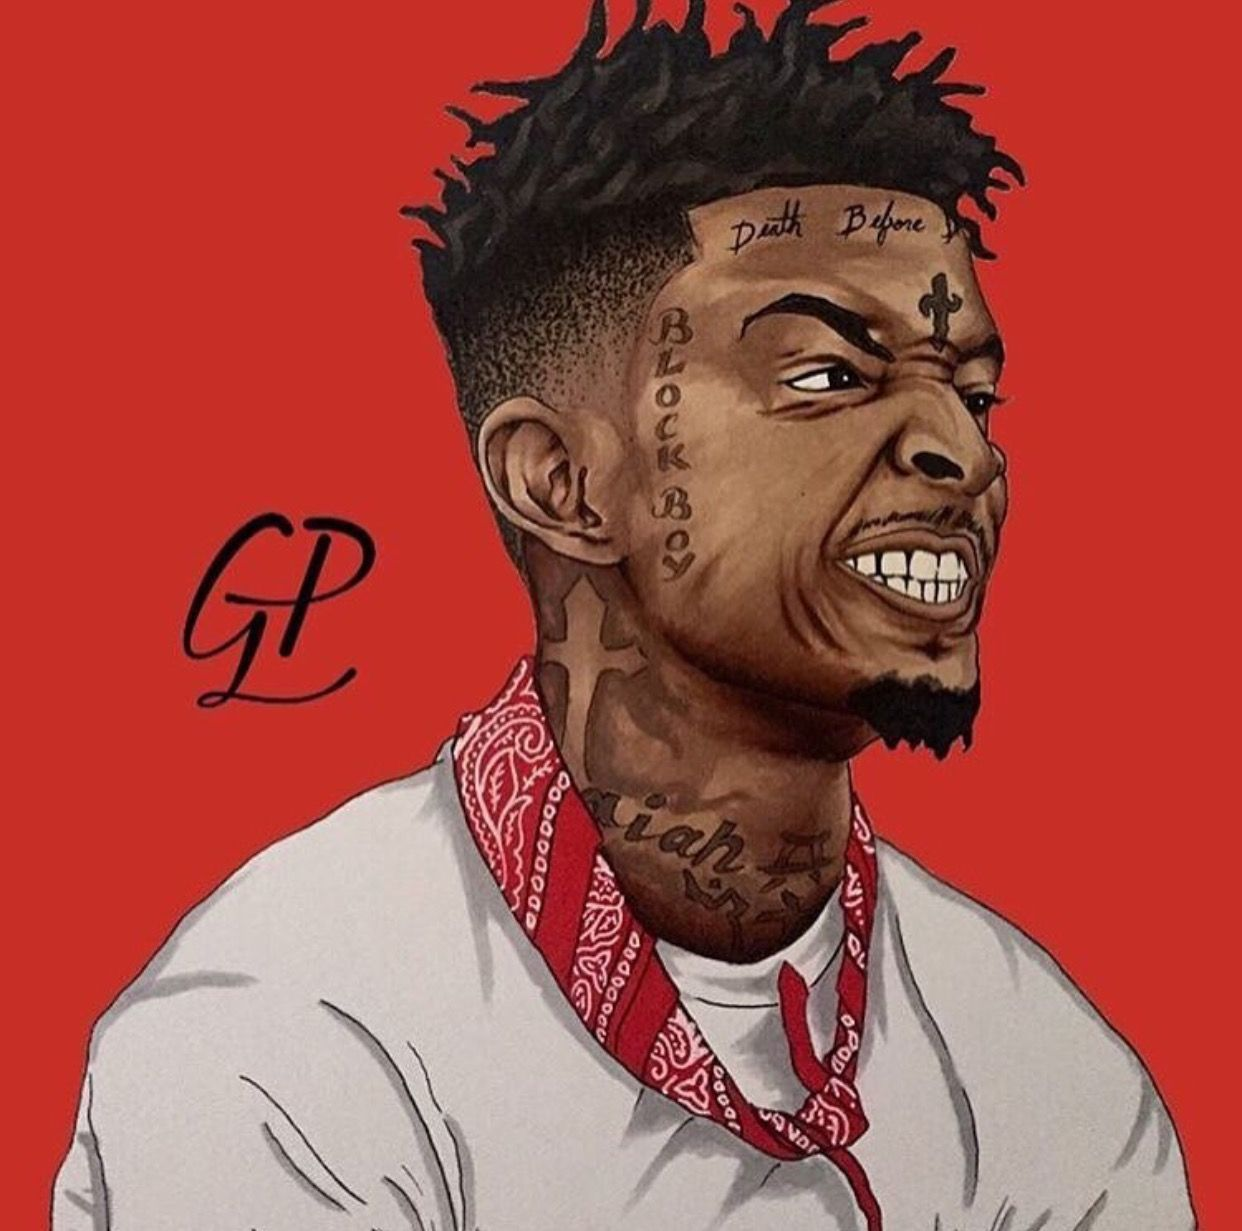 21 savage cartoon wallpaper posted by samantha mercado 21 savage cartoon wallpaper posted by